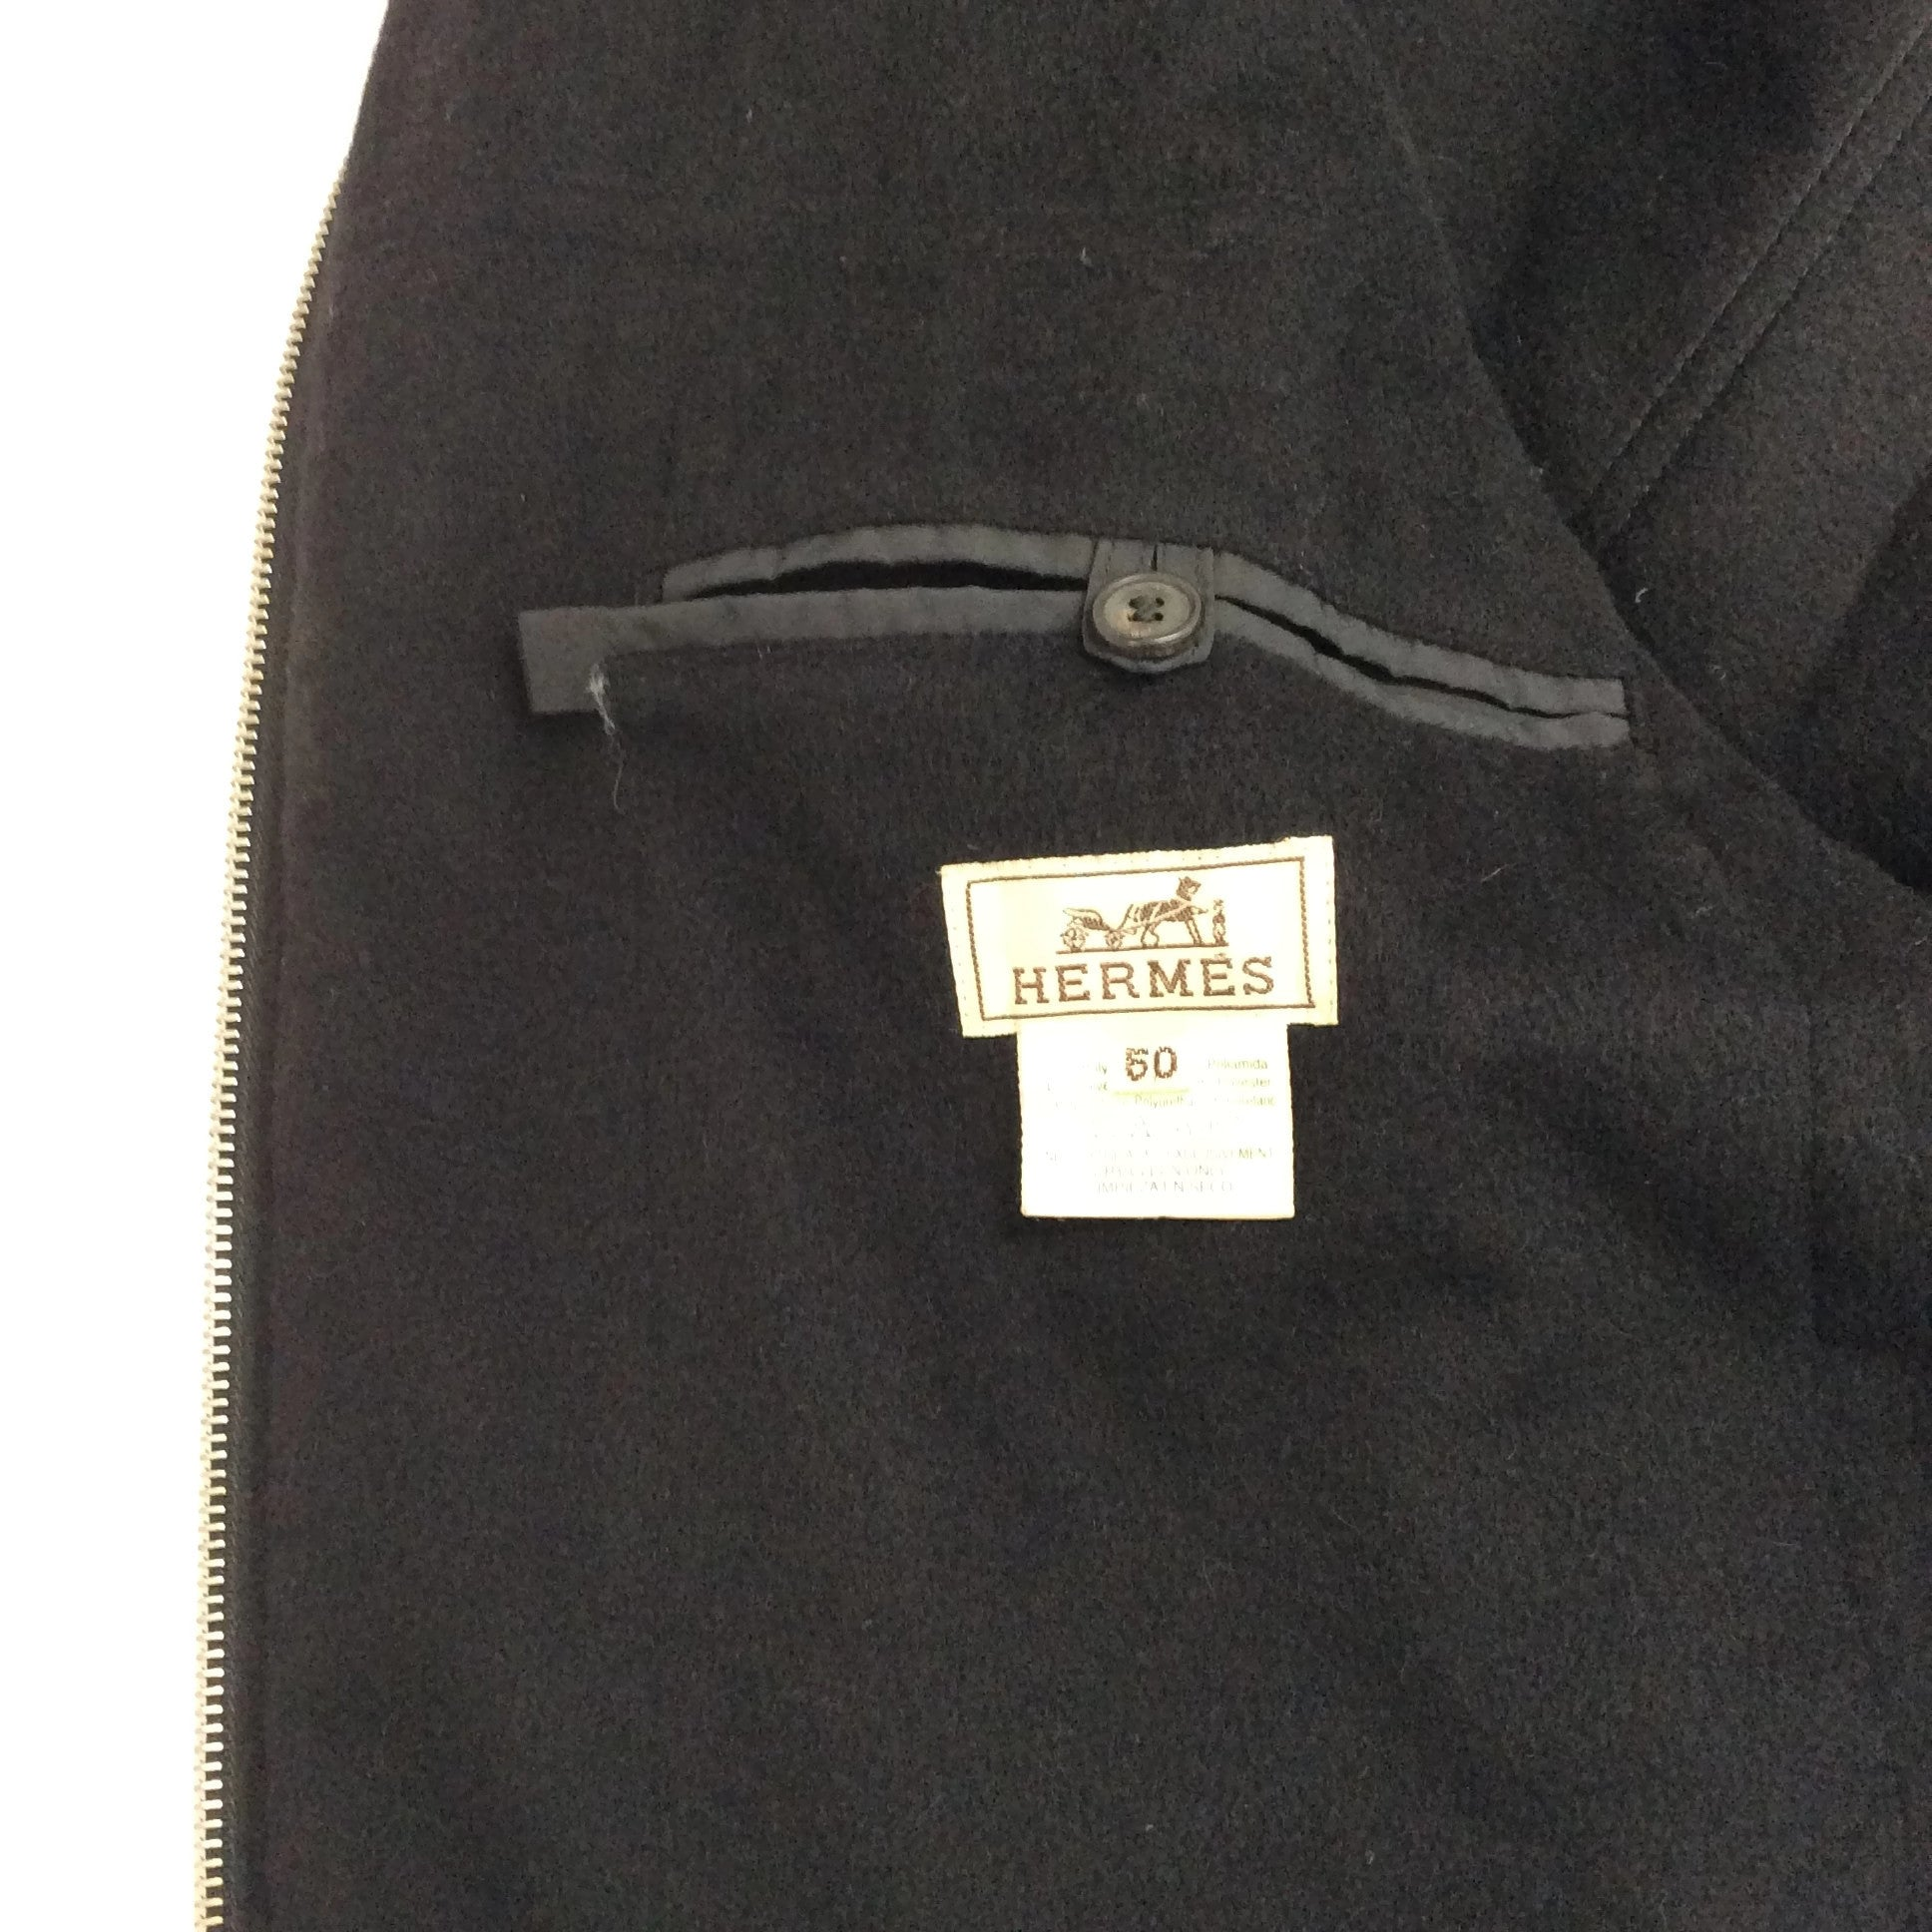 Hermes Wool and Cashmere Lined Windbreaker Jacket